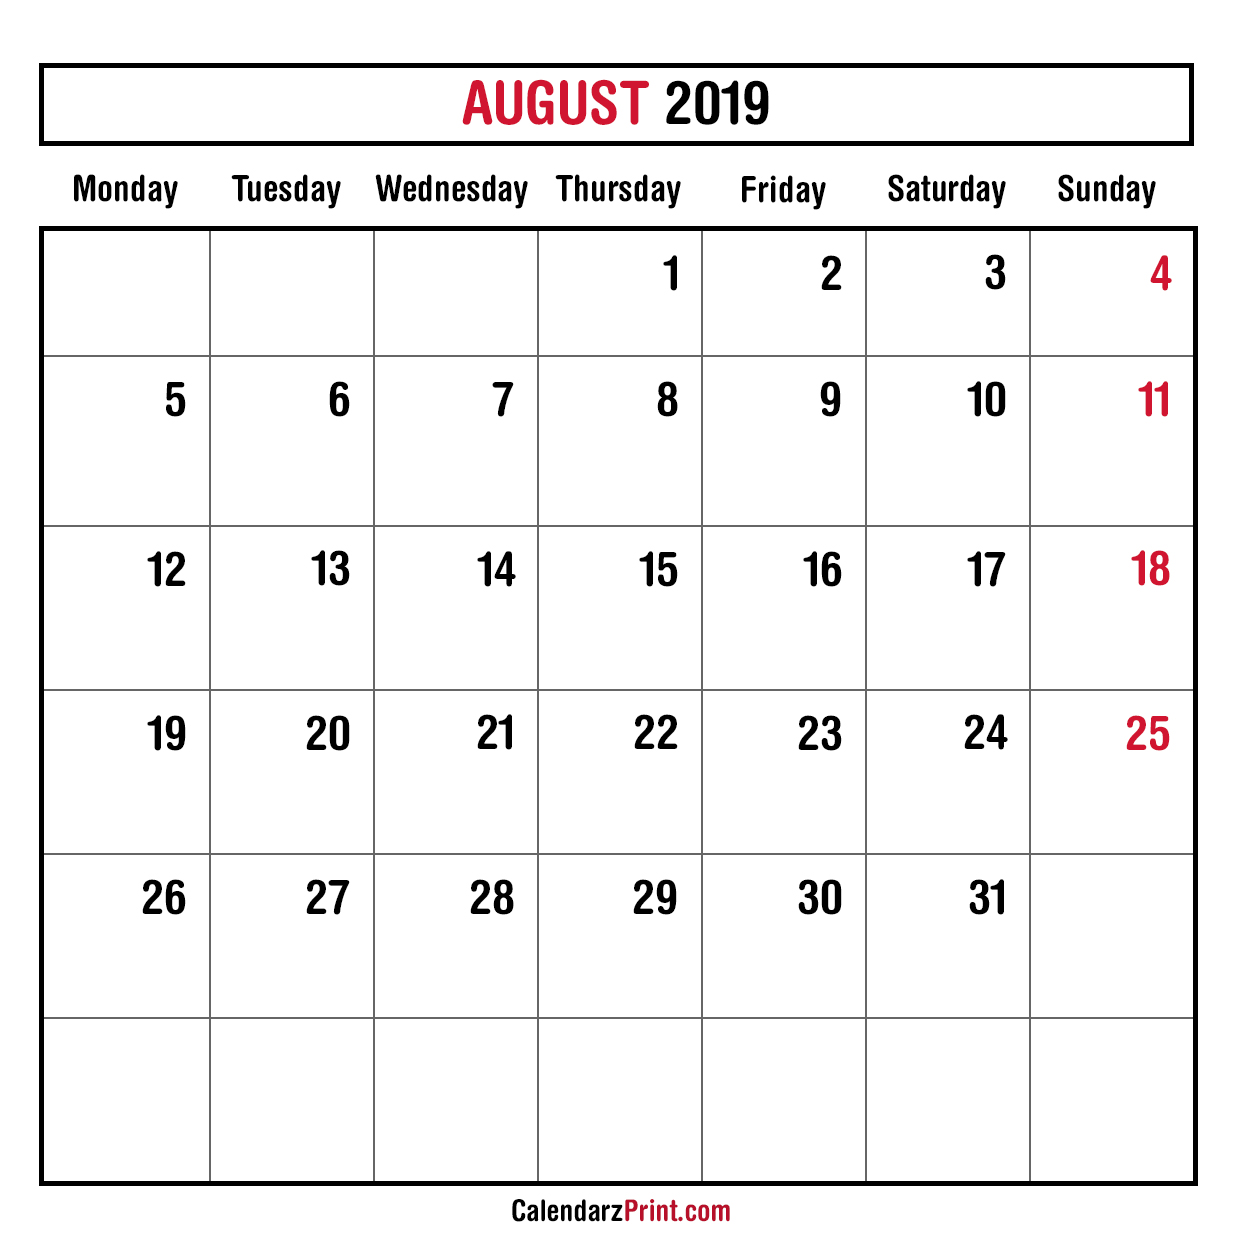 August 2019 Calendar Printable Monday Start.Monthly Planner August 2019 Printable Monthly Calendar Free